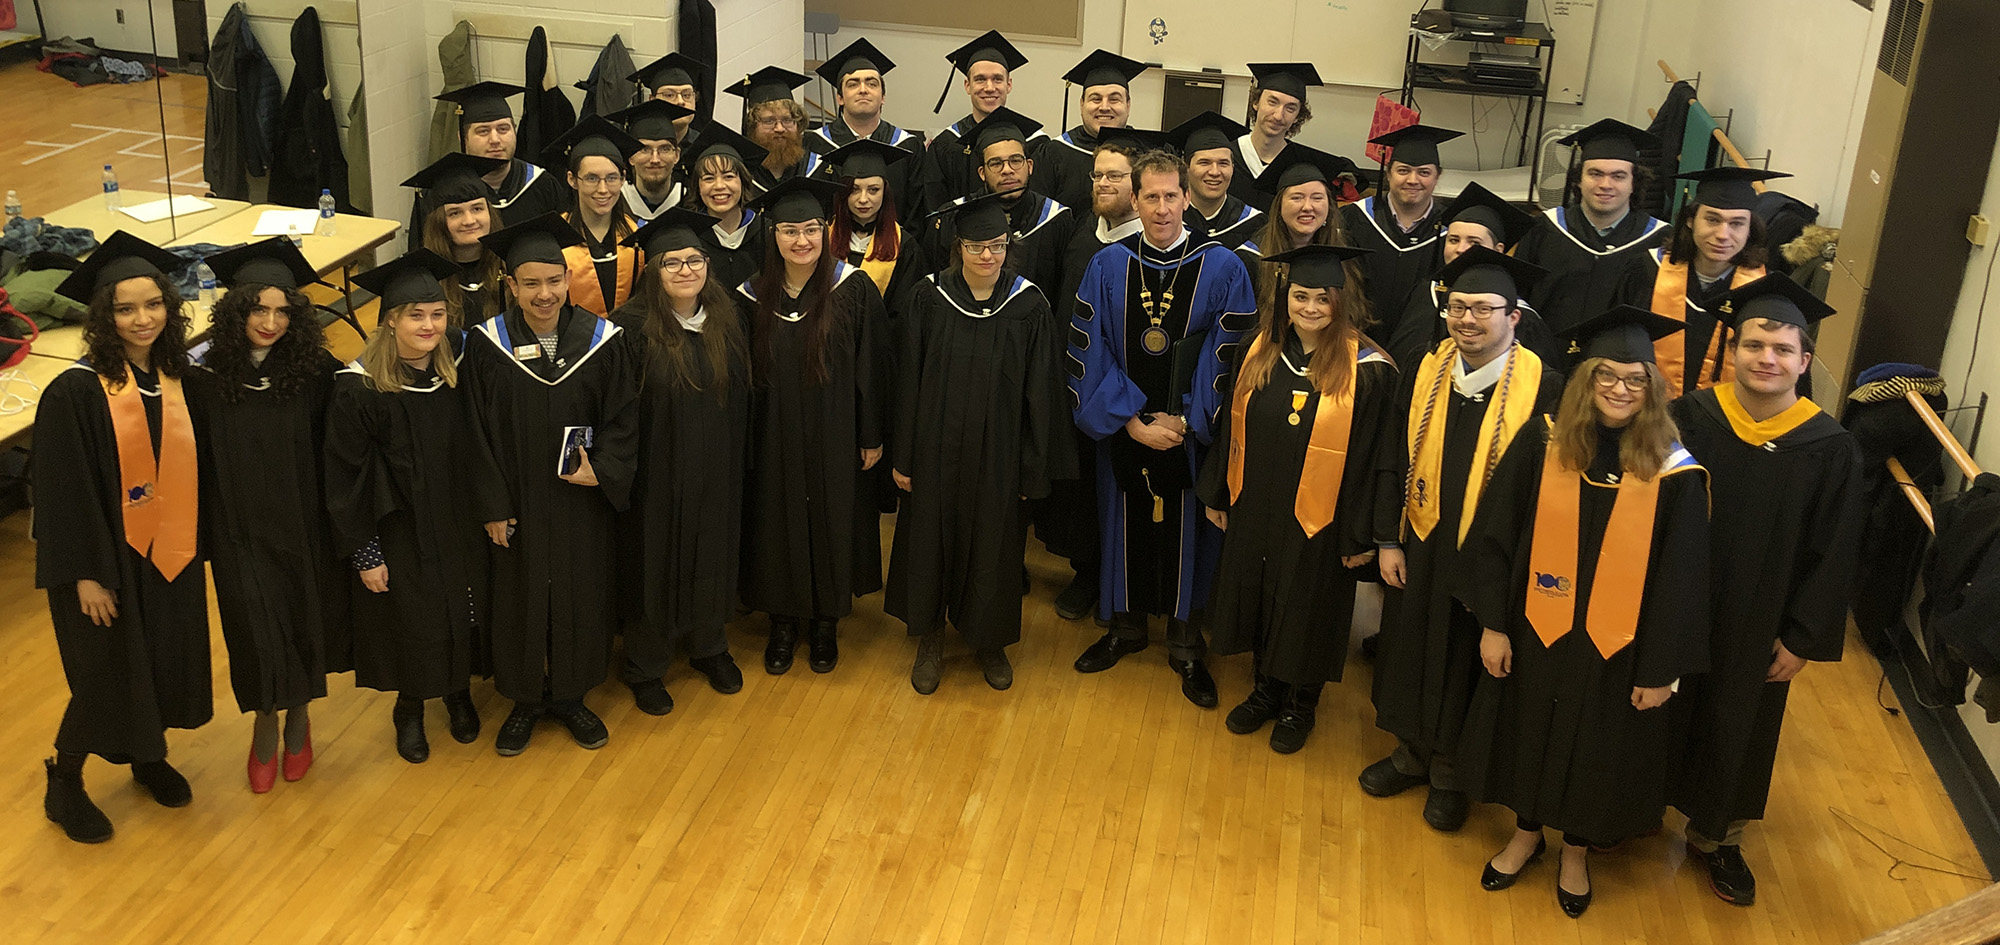 A photo of the Fall 2019 Class wearing their graduation caps and gowns, taken backstage with Landmark College President Dr. Peter Eden just before the December 14, 2019 Commencement Ceremony.